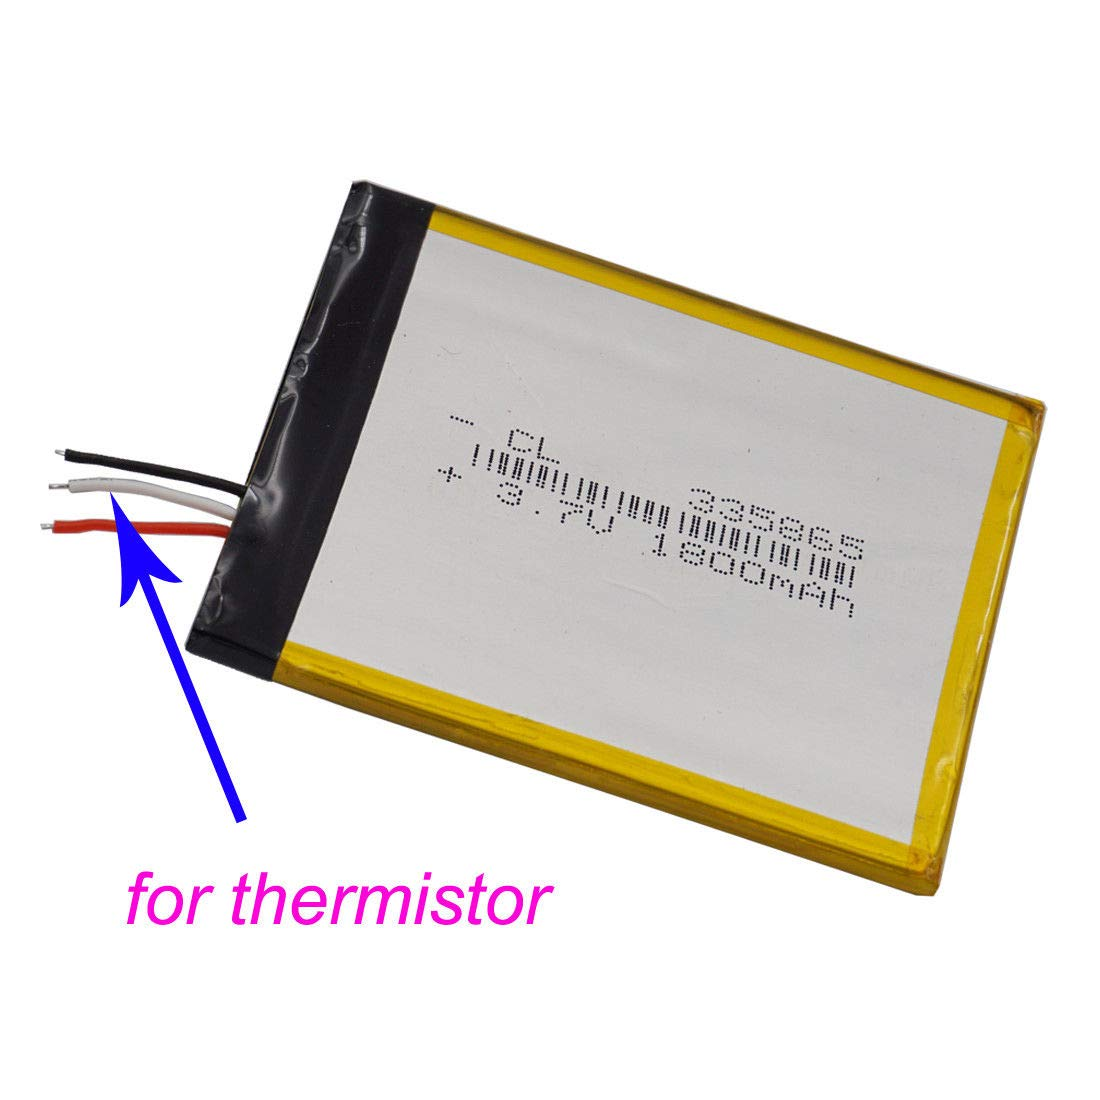 Fidgetfidget Polymer Battery 37v 1800 Mah 3 Wires Thermistors Wiring In Parallel Thermistor For Tablet Pc 335865 Electronics